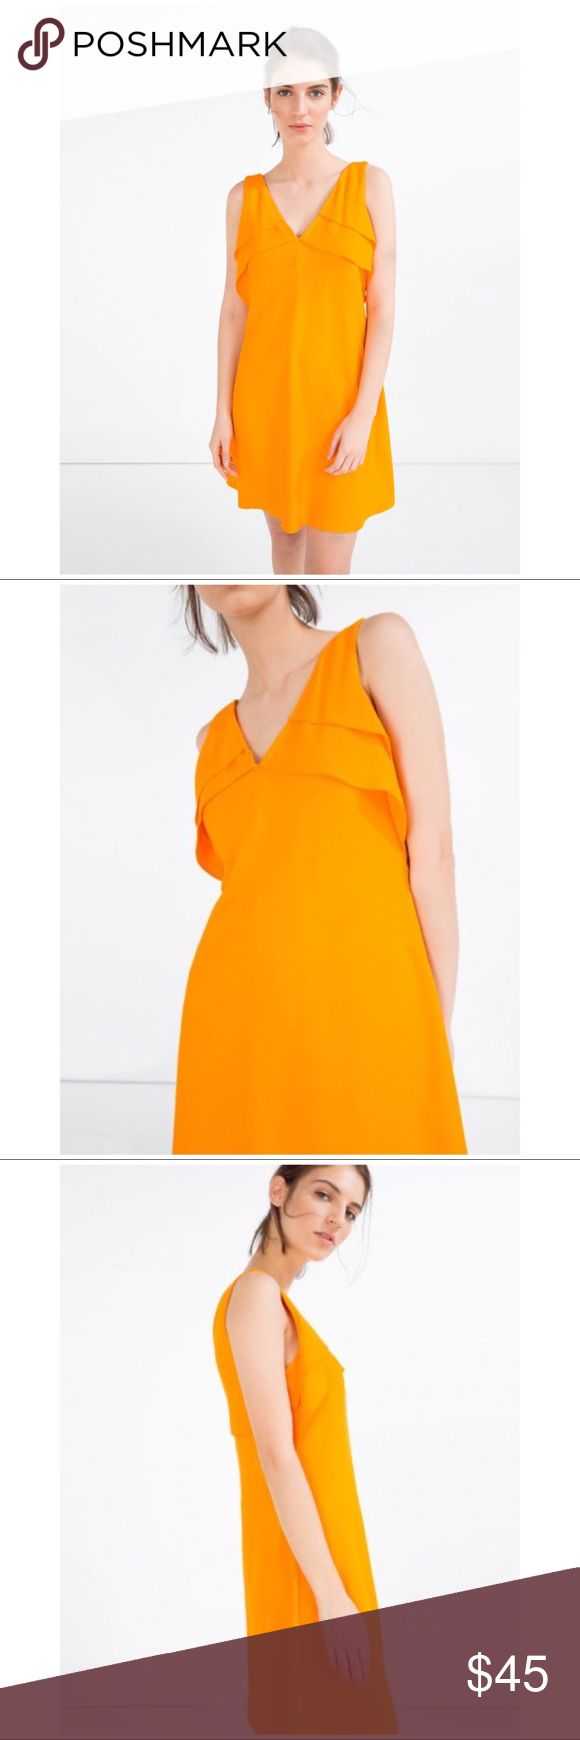 NWT ZARA SHORT FRILLED DRESS SZ XS This is a brand new dress from Zara. No longer sold in stores!  Details include: sleeveless, a v-neck cut on both sides, short ruffles on the front/back, a back zipper, and a mini loose fit.   Original Price: $50 Offers welcome!  #zara #zaradress #dress #zaraorangedress #orangedress #zarafrilleddress #frilleddress #orange #mini #loosefit #frills #frill Zara Dresses Mini